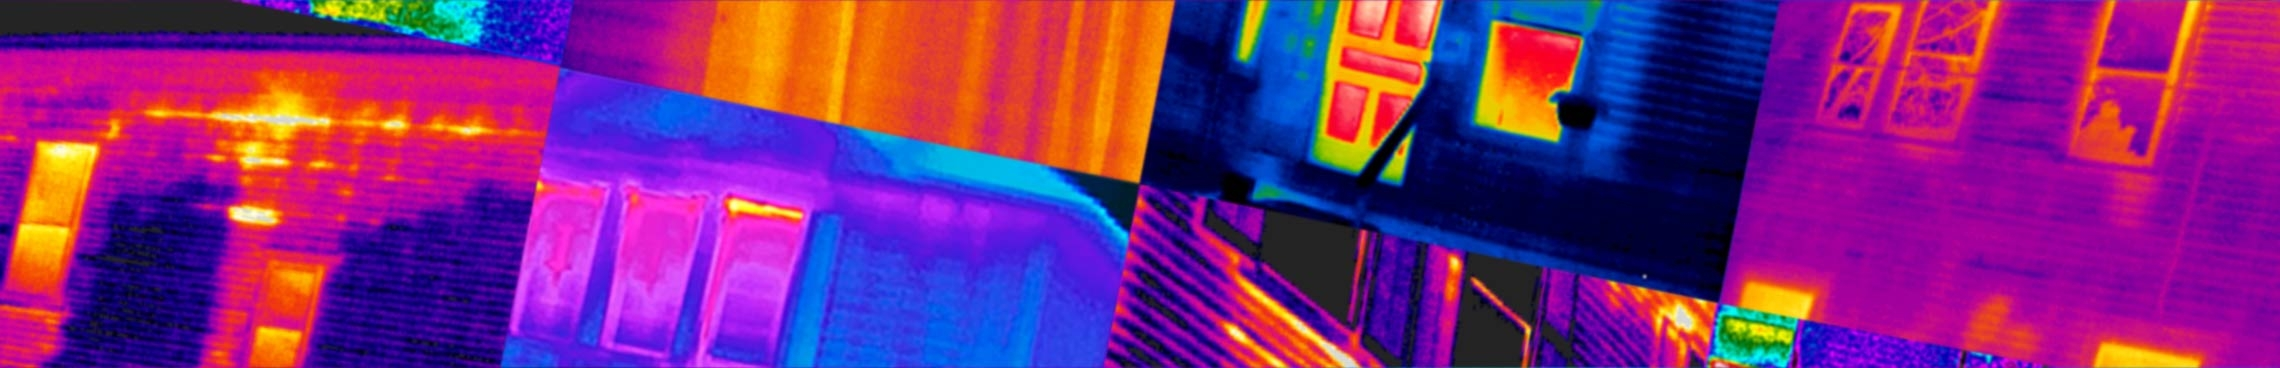 Buying a Thermal Imager for Building Applications